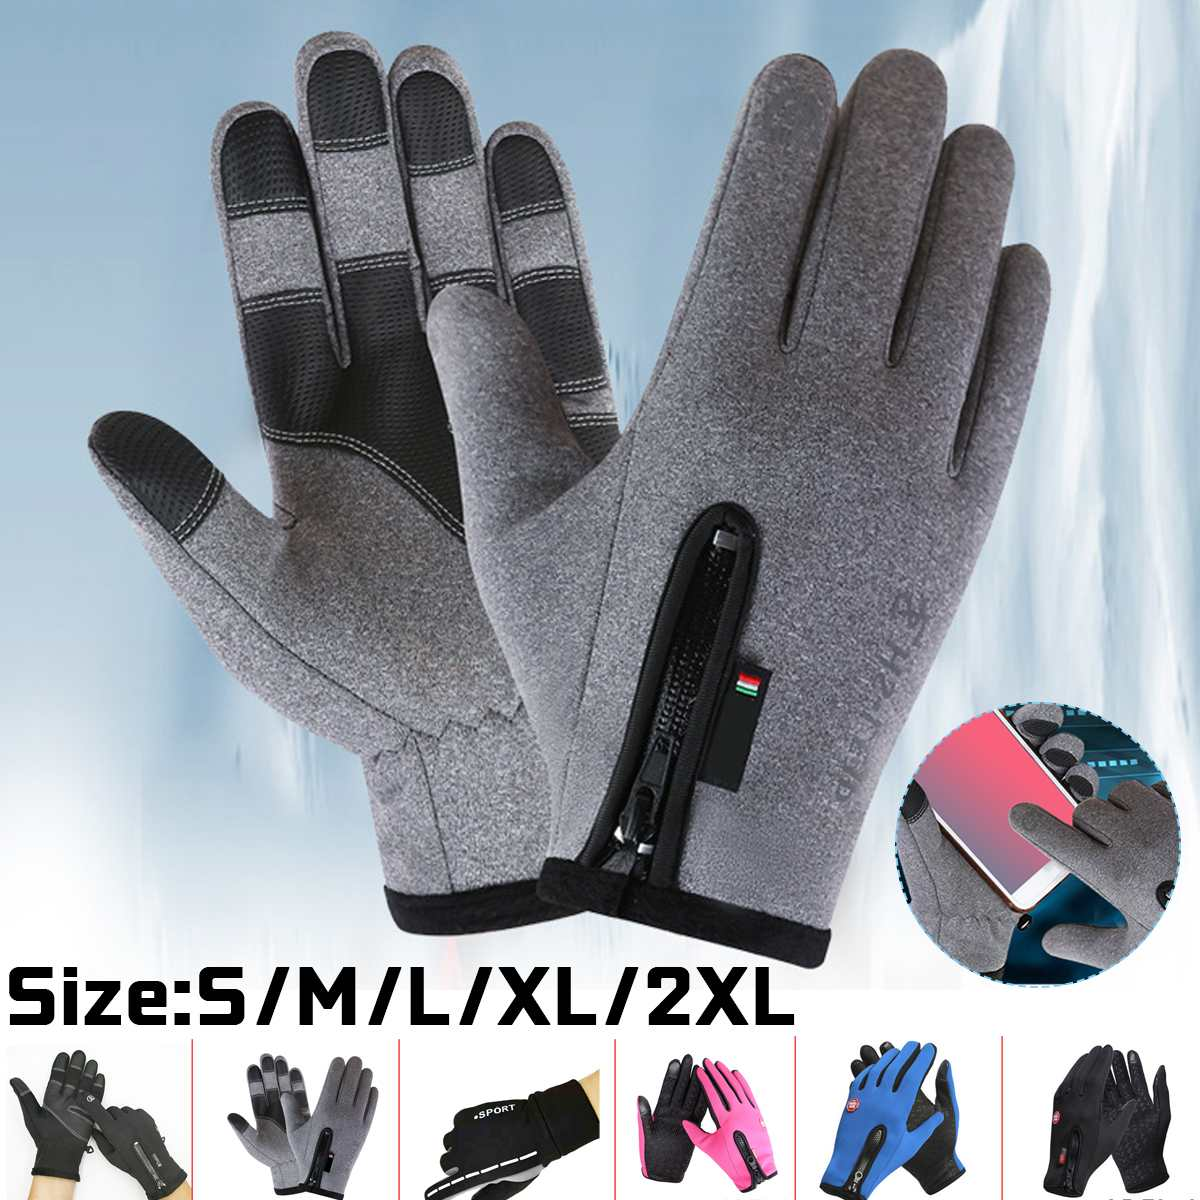 Heated Waterproof Winter Gloves Fluff Warm Gloves Touch Screen Reflective Anti Slip Sport Riding Cycling Skiing Gloves Unisex|Skiing Gloves| |  - title=